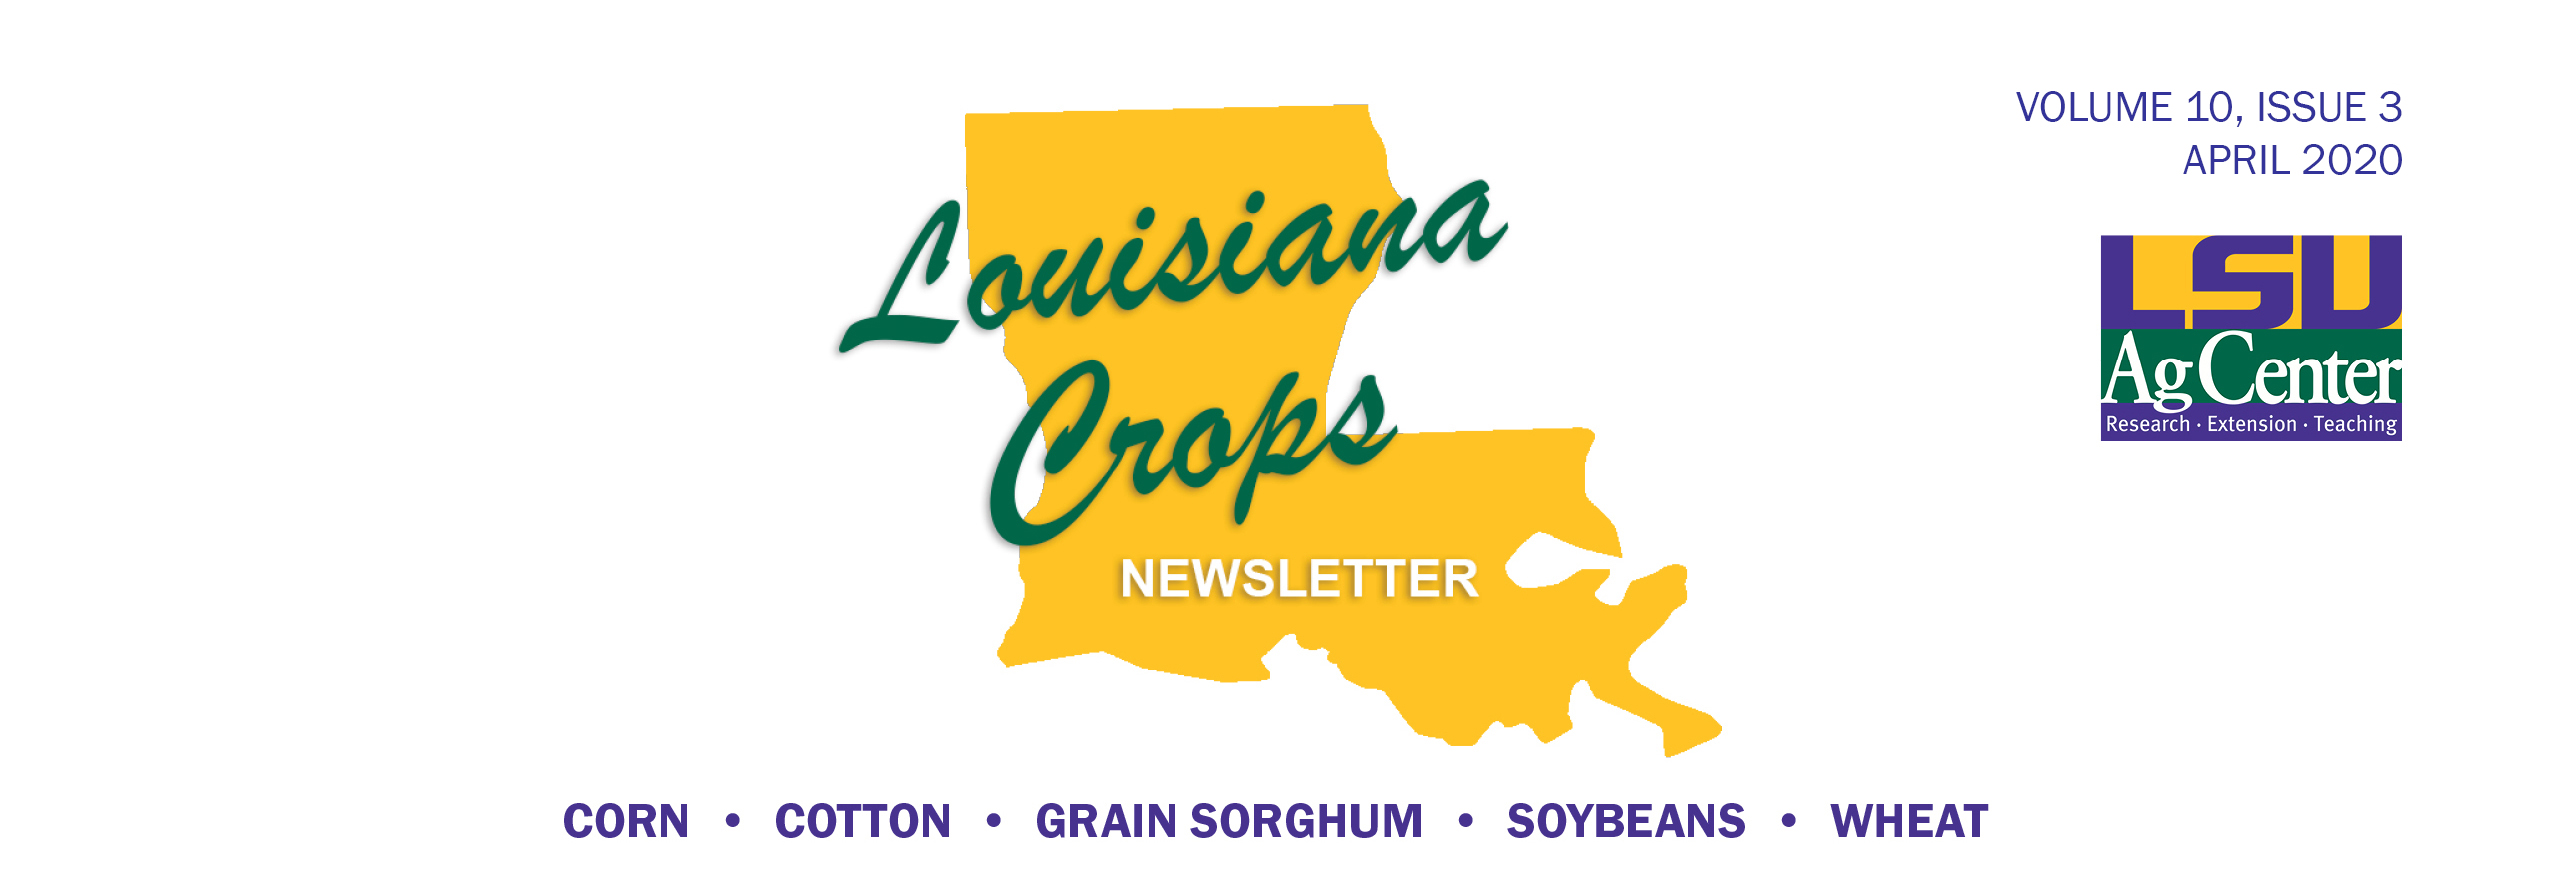 Louisiana Crops Newsletter April 2020 header copy.